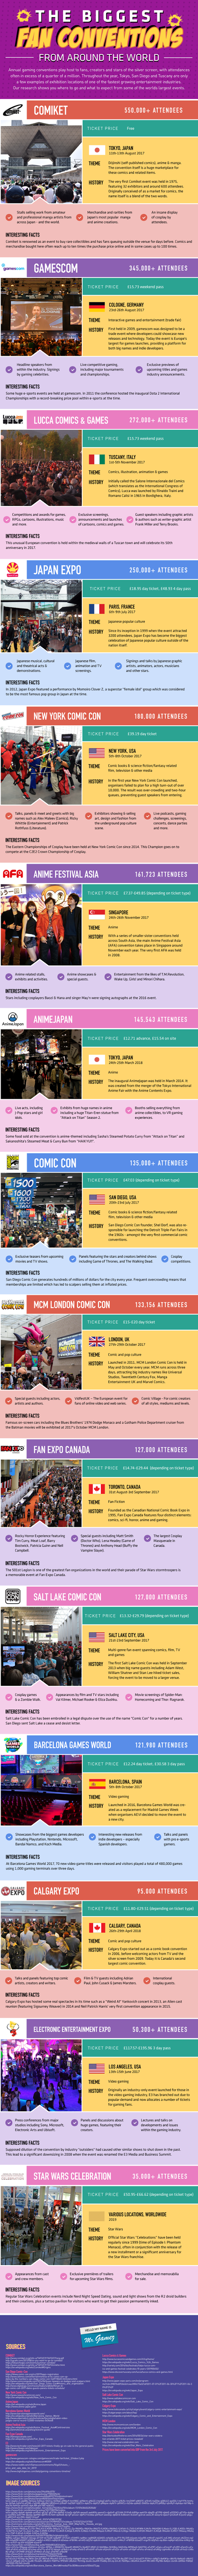 THE BIGGEST FAN CONVENTIONS FROM AROUND THE WORLD